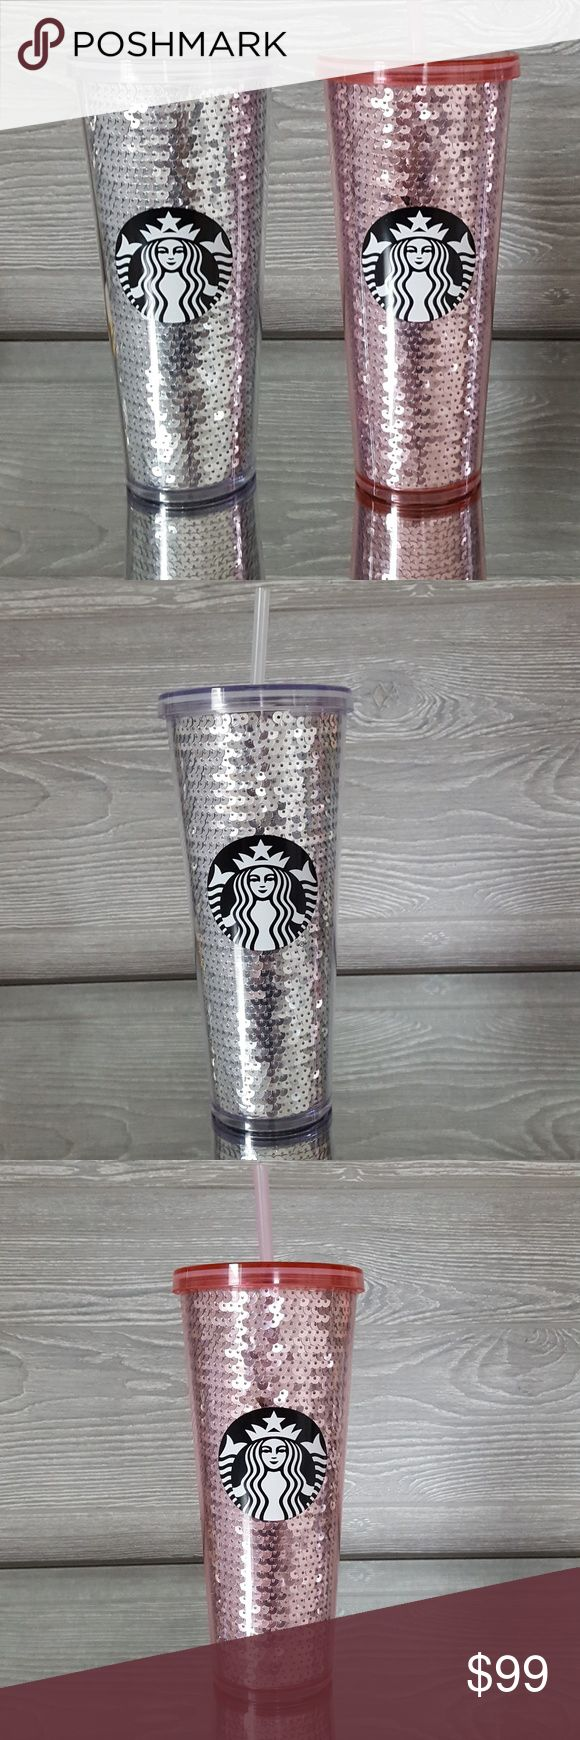 2 Starbucks Holiday Sequin Tumblers Pink Silver Limited Edition Holiday 2017 Sequin bling glam tumbler cup 24 oz. New with tags Price Firm! Starbucks Other